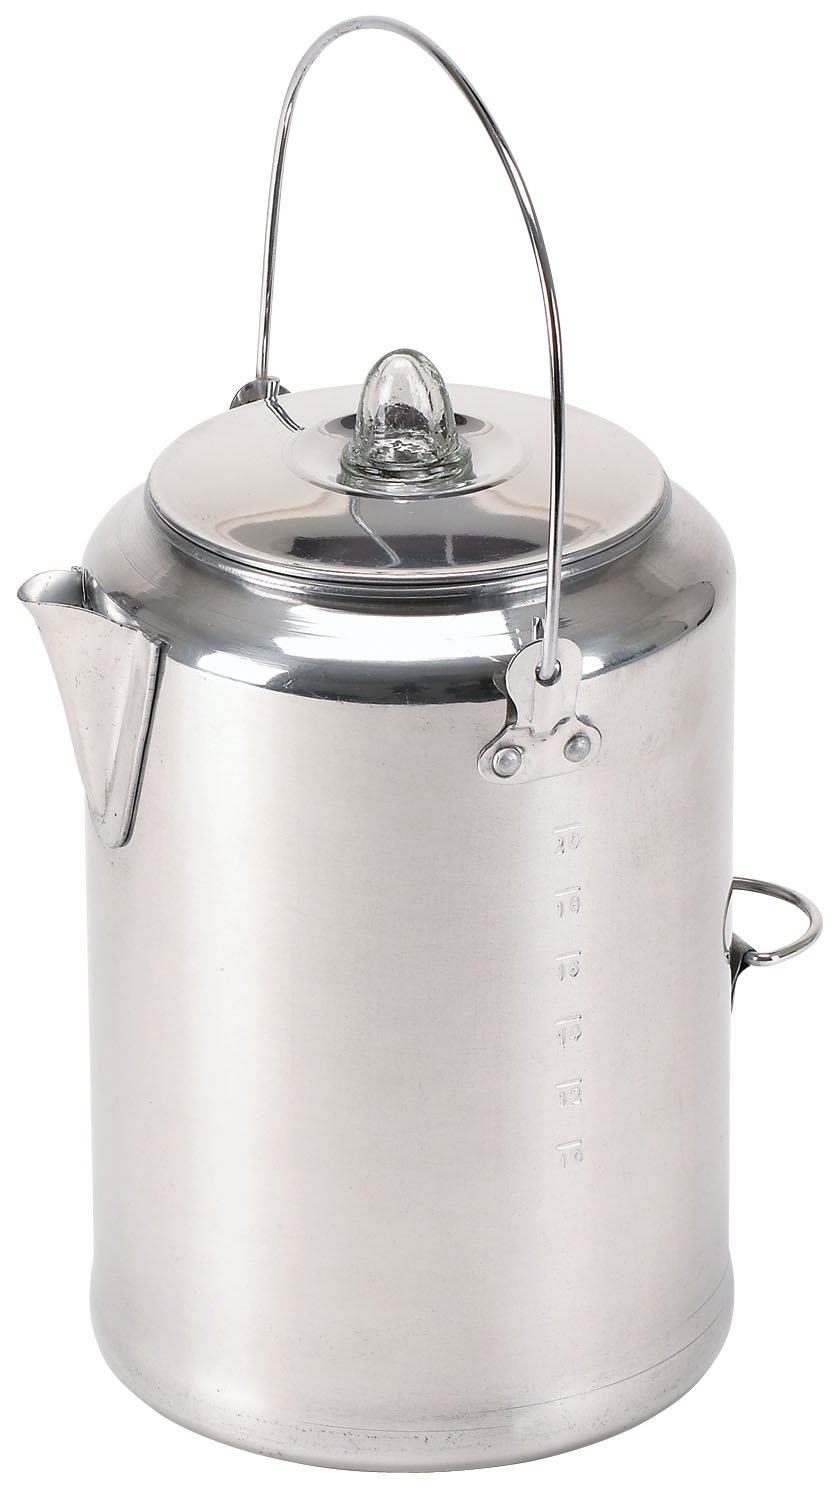 Stansport Aluminum Percolator Coffee Pot, 9 Cups 277